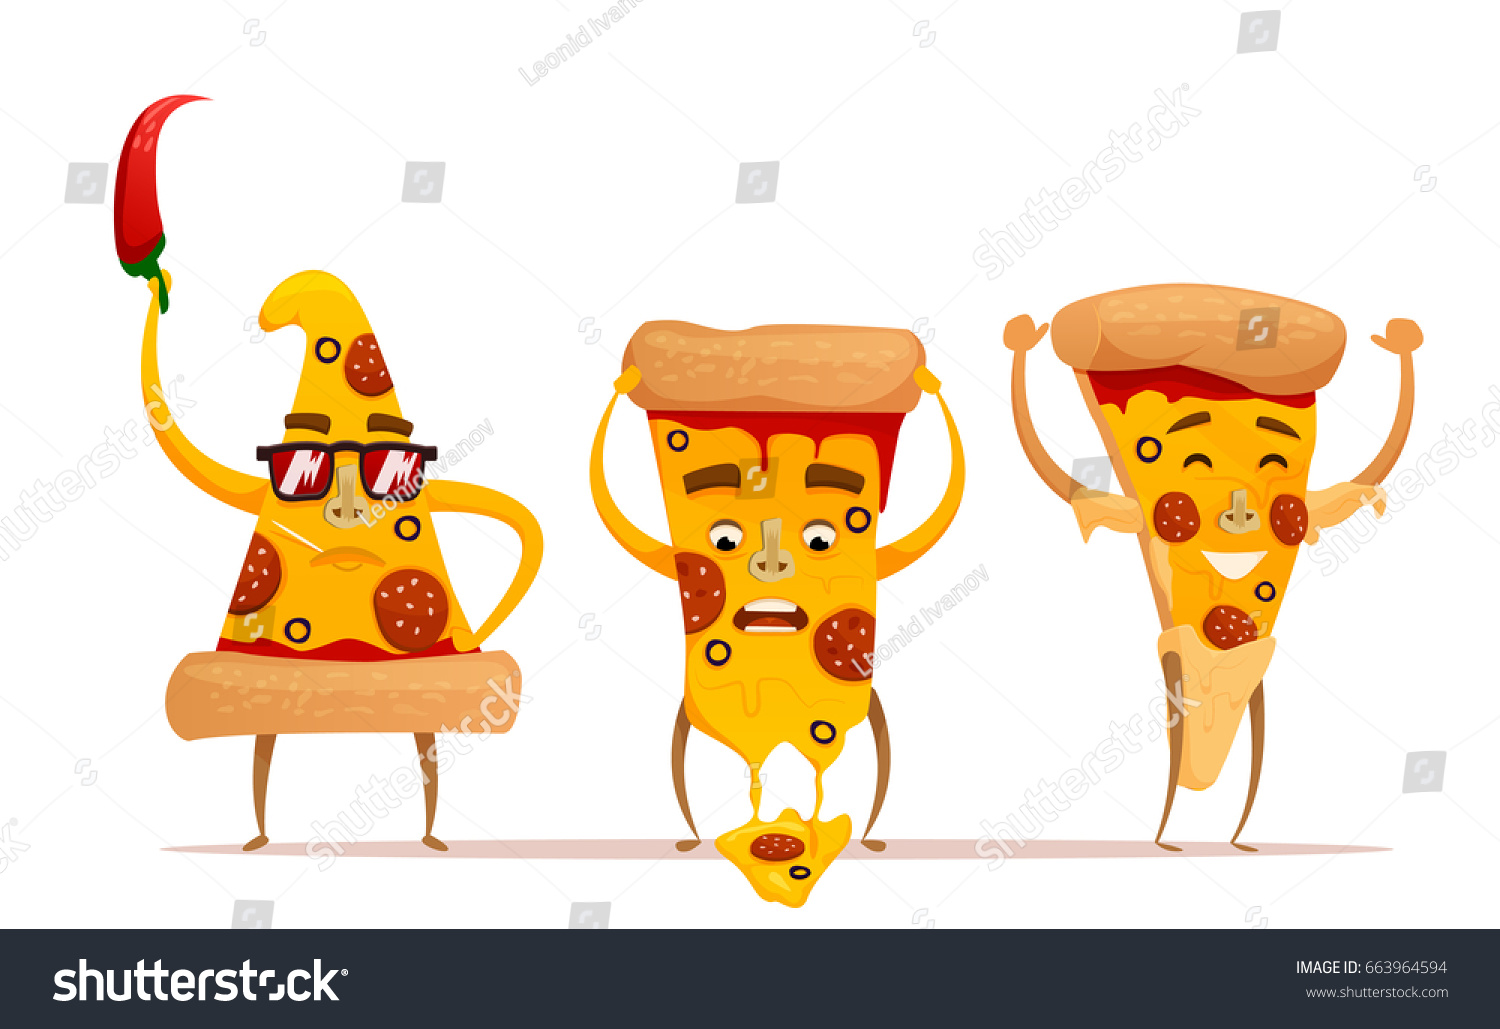 Funny Pizza Slice Cute Pizza Character Stock Vector HD (Royalty Free ...